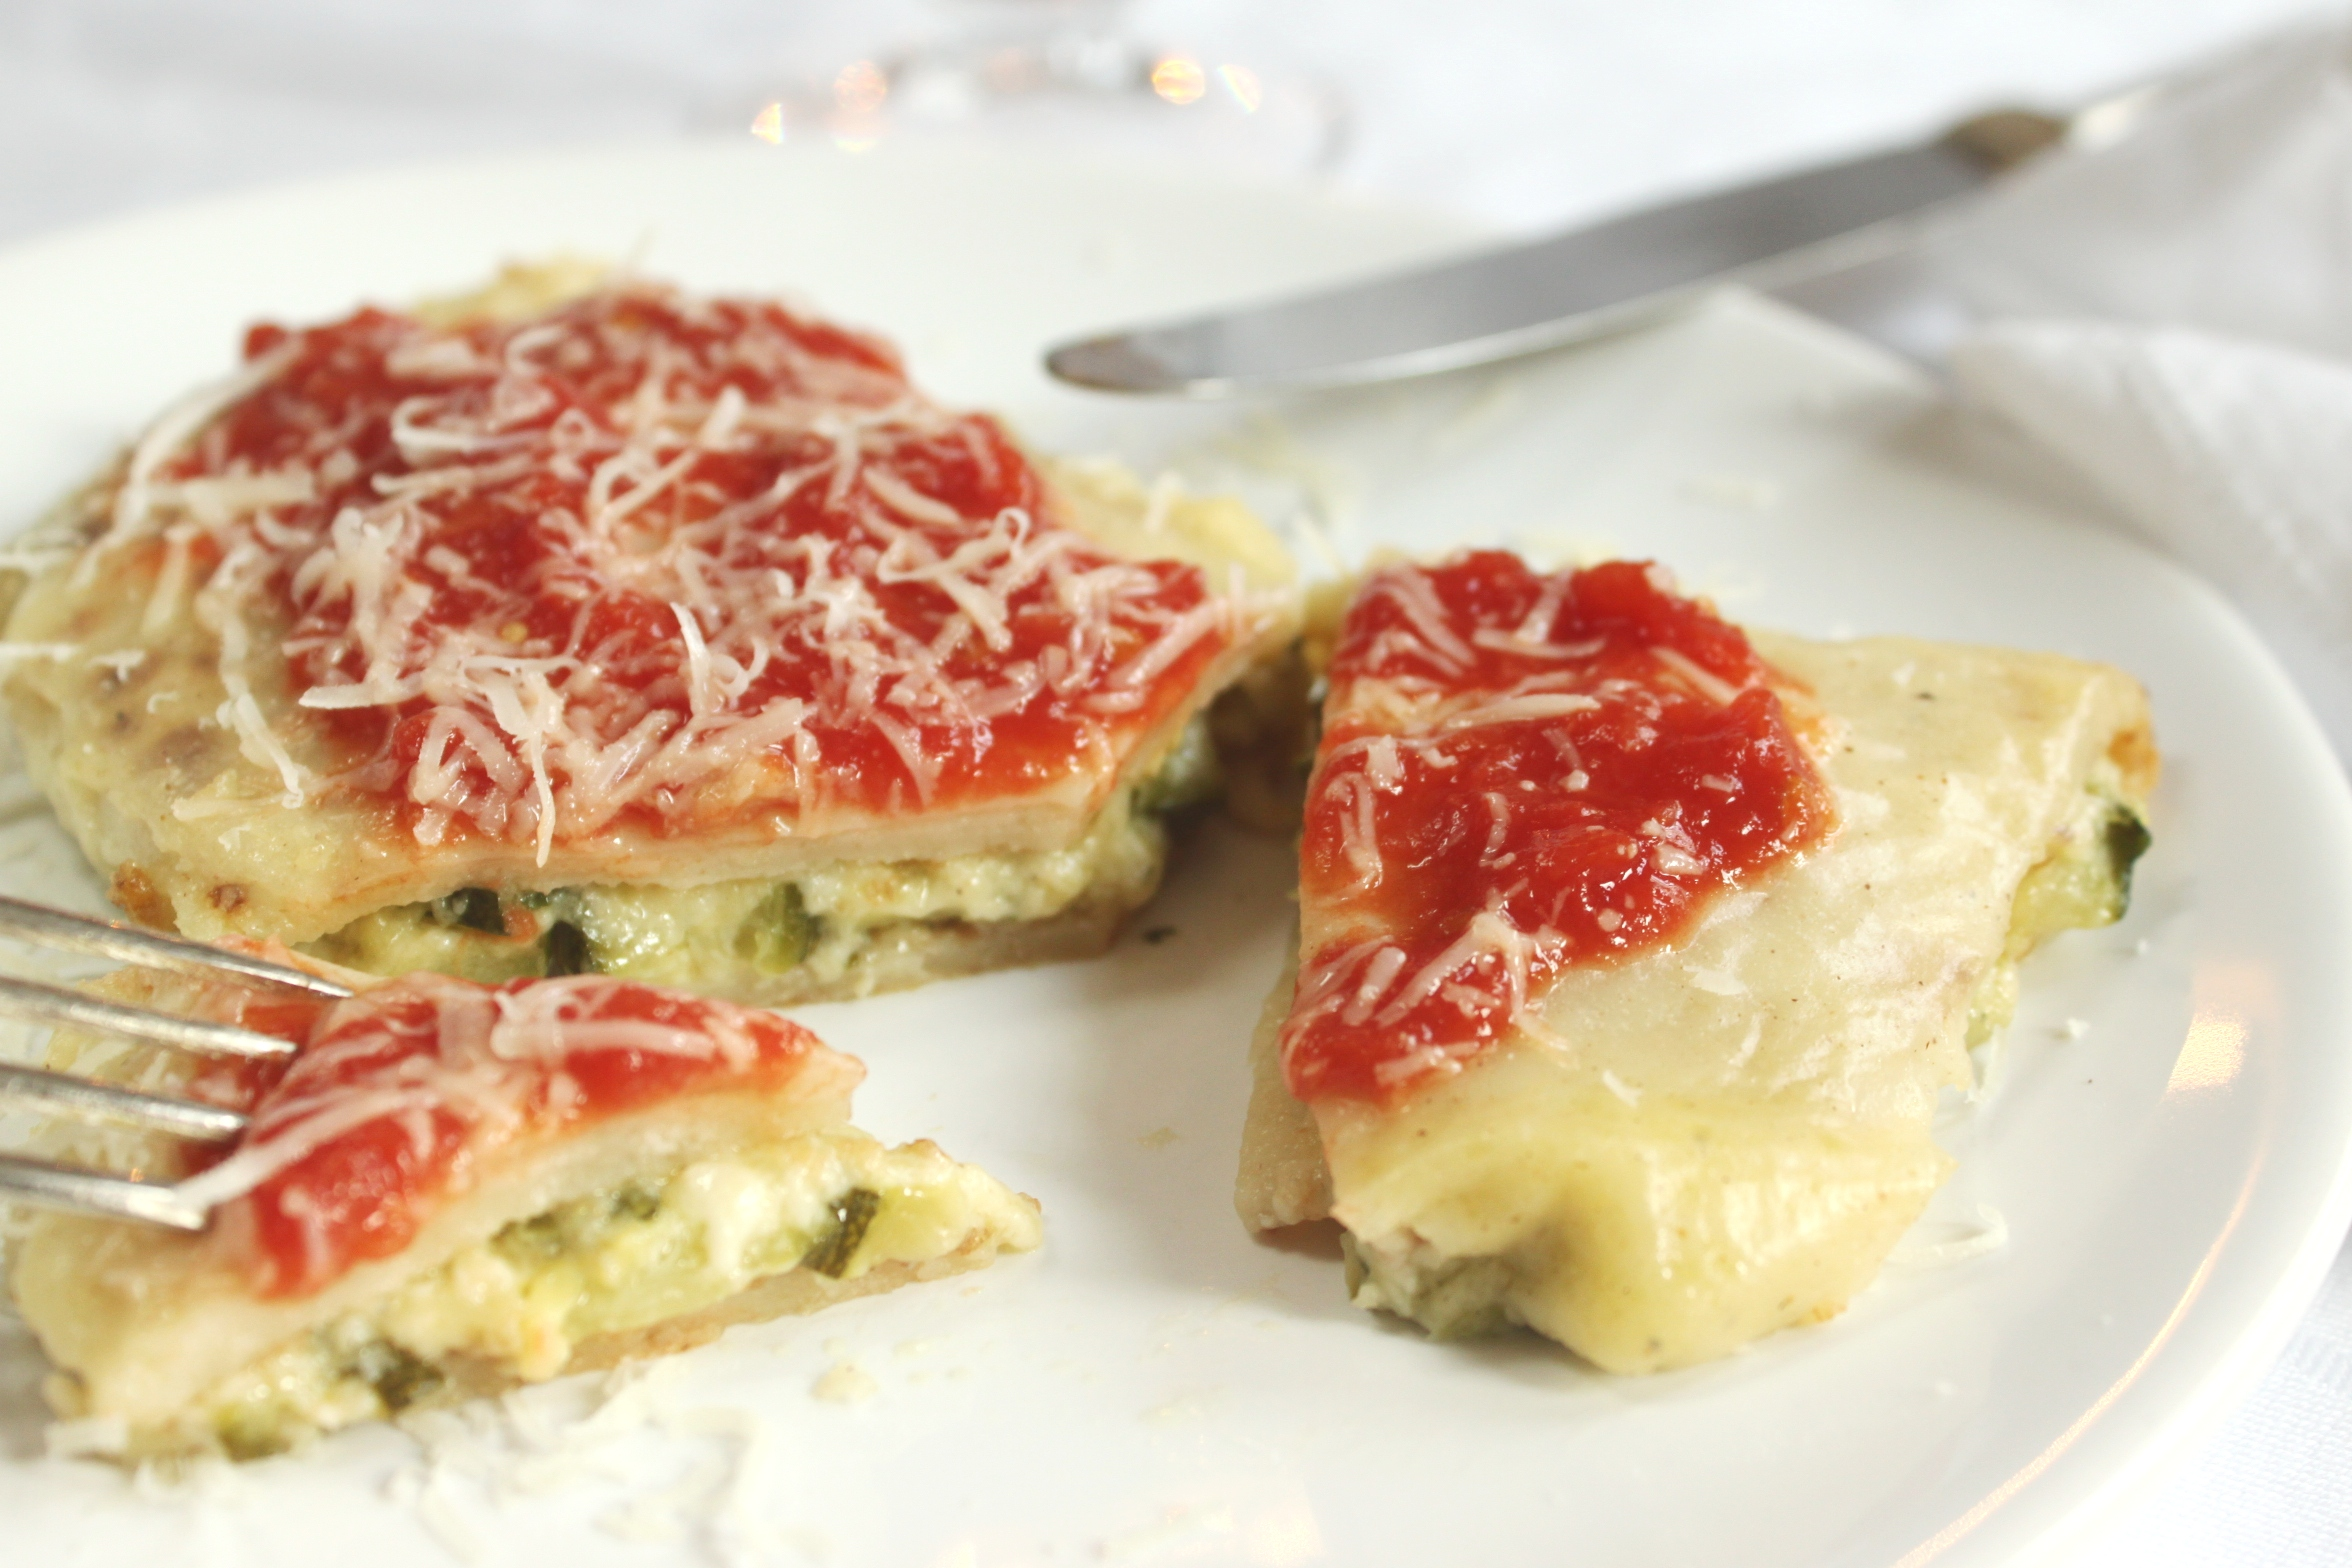 Lamb And Ricotta Crespelle With Tomato And Pecorino Recipes ...